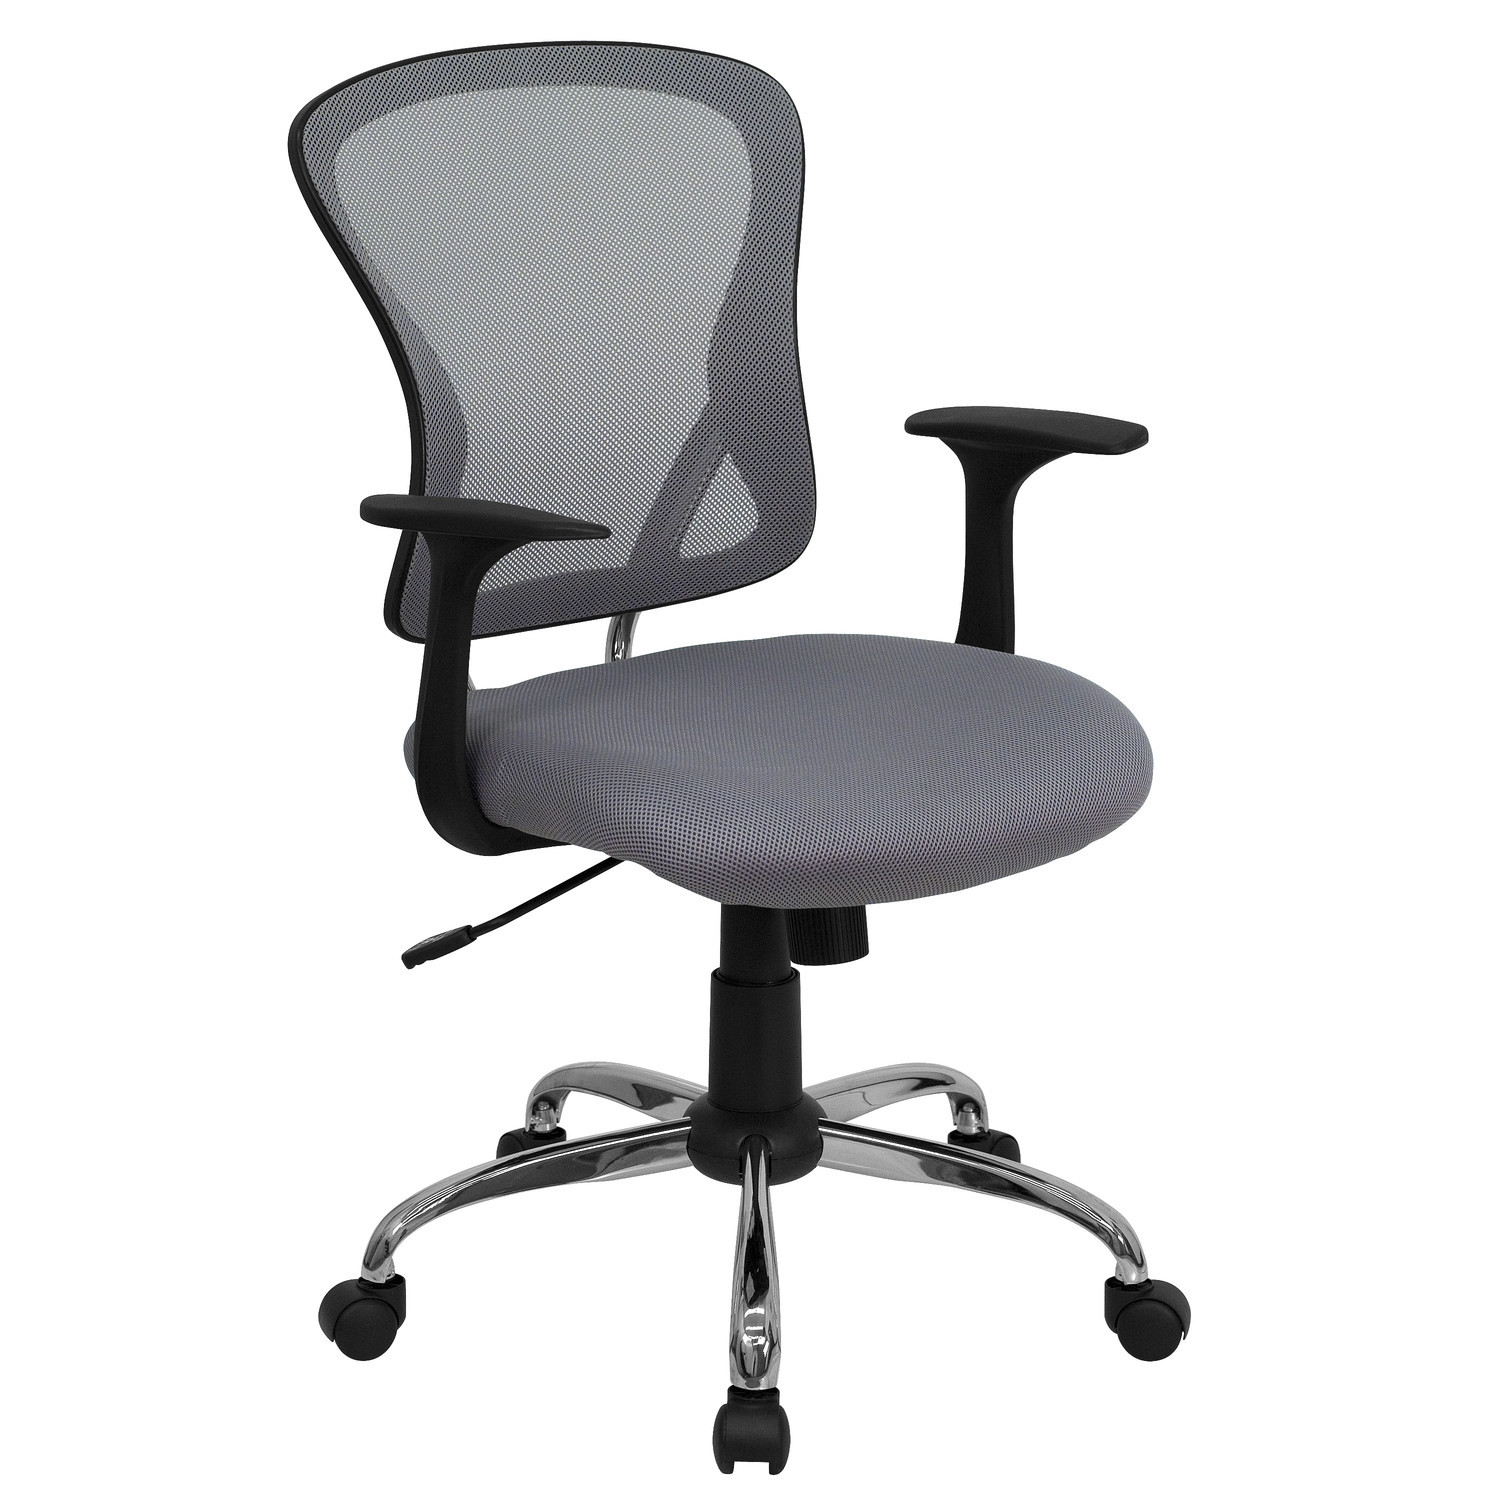 Best ideas about Best Affordable Office Chair . Save or Pin 3 Best affordable office chairs under $100 Now.